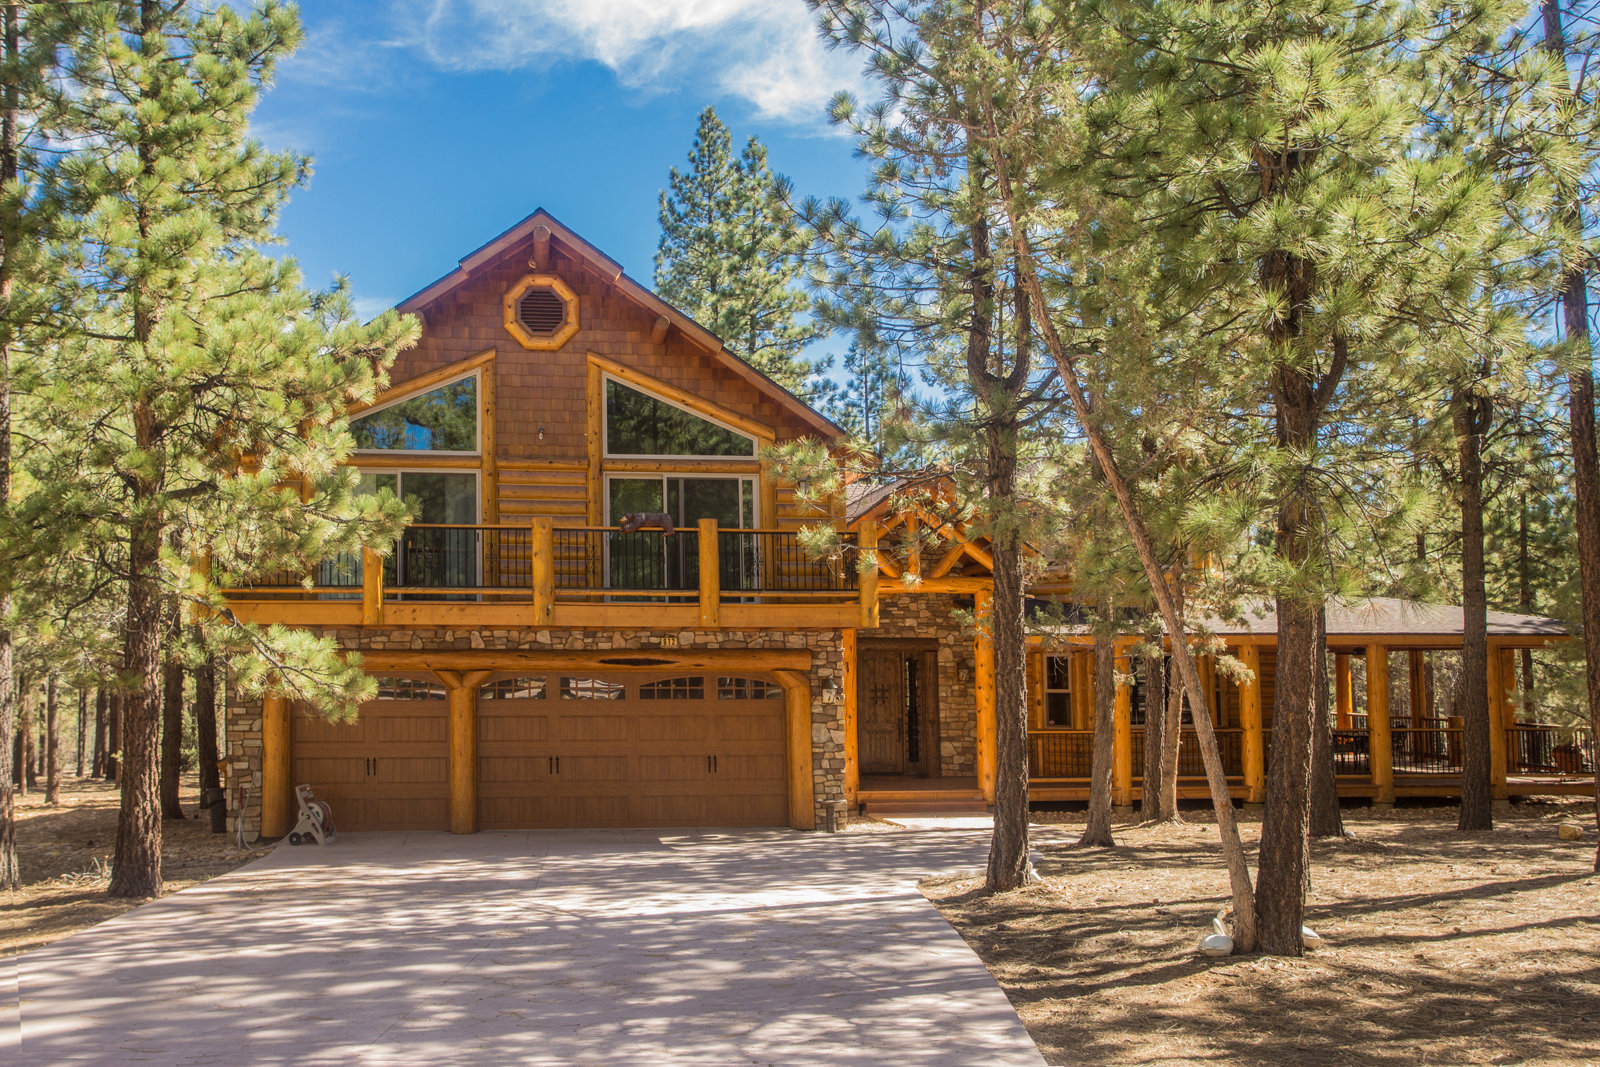 Mike wochner 909 633 2558 re max your premier real for Big bear cabins california